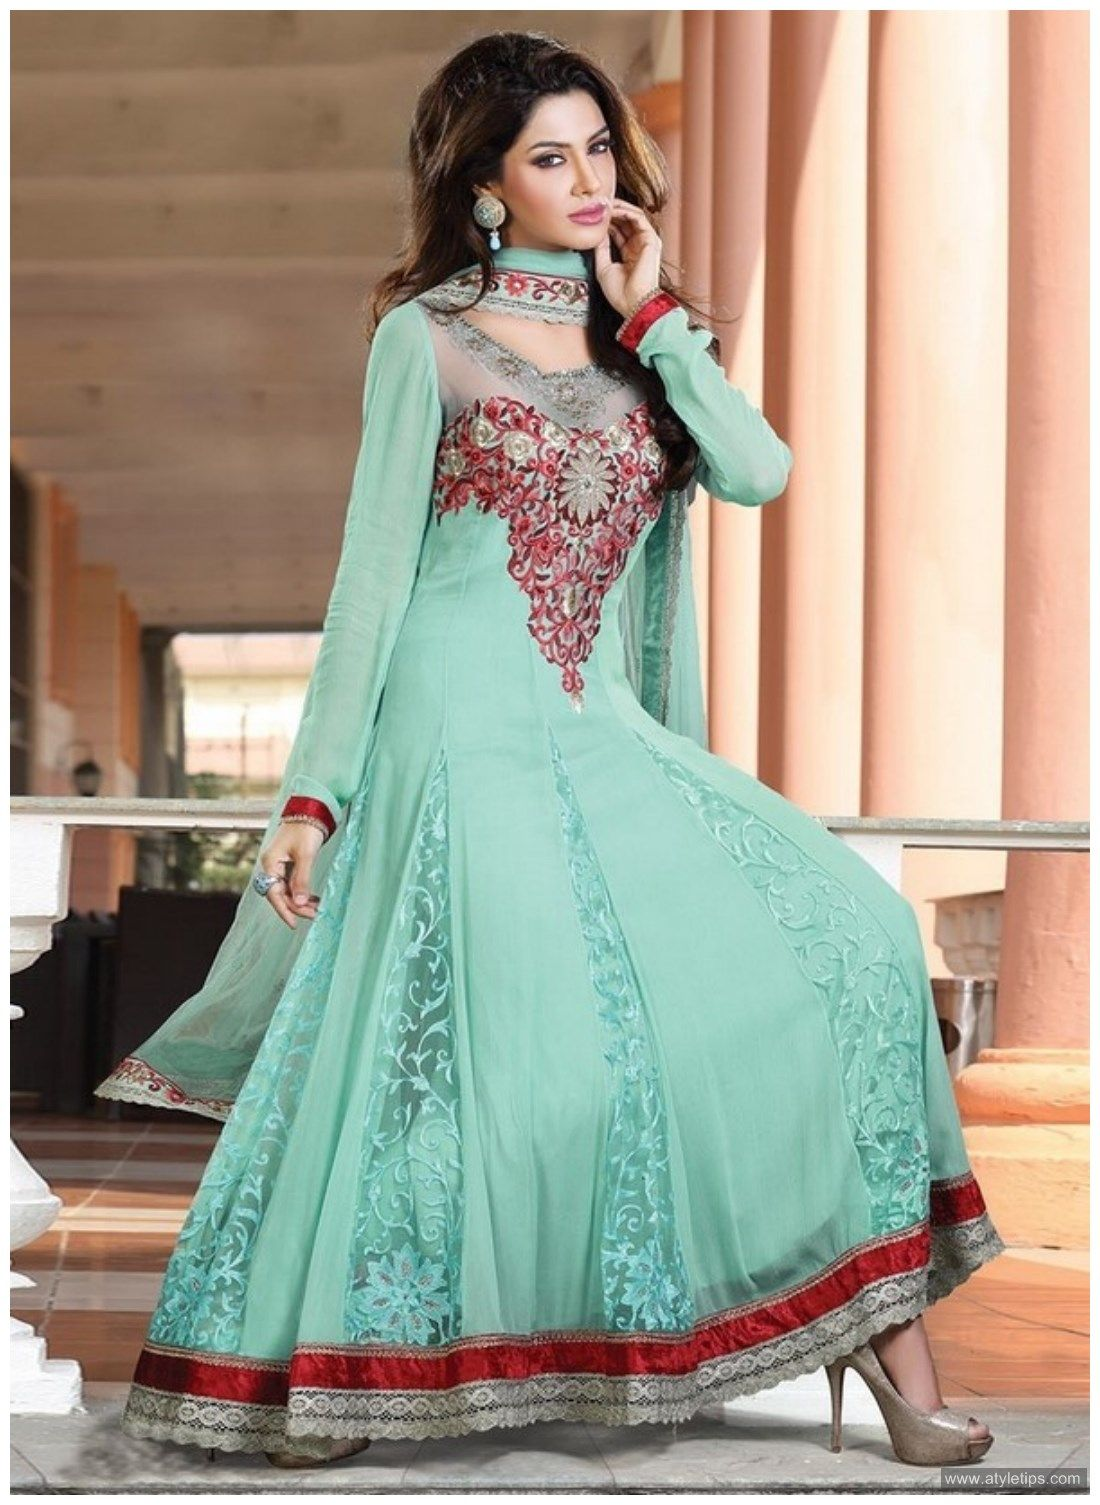 Cheap pakistani dresses design onlien | fashion | Pinterest ...